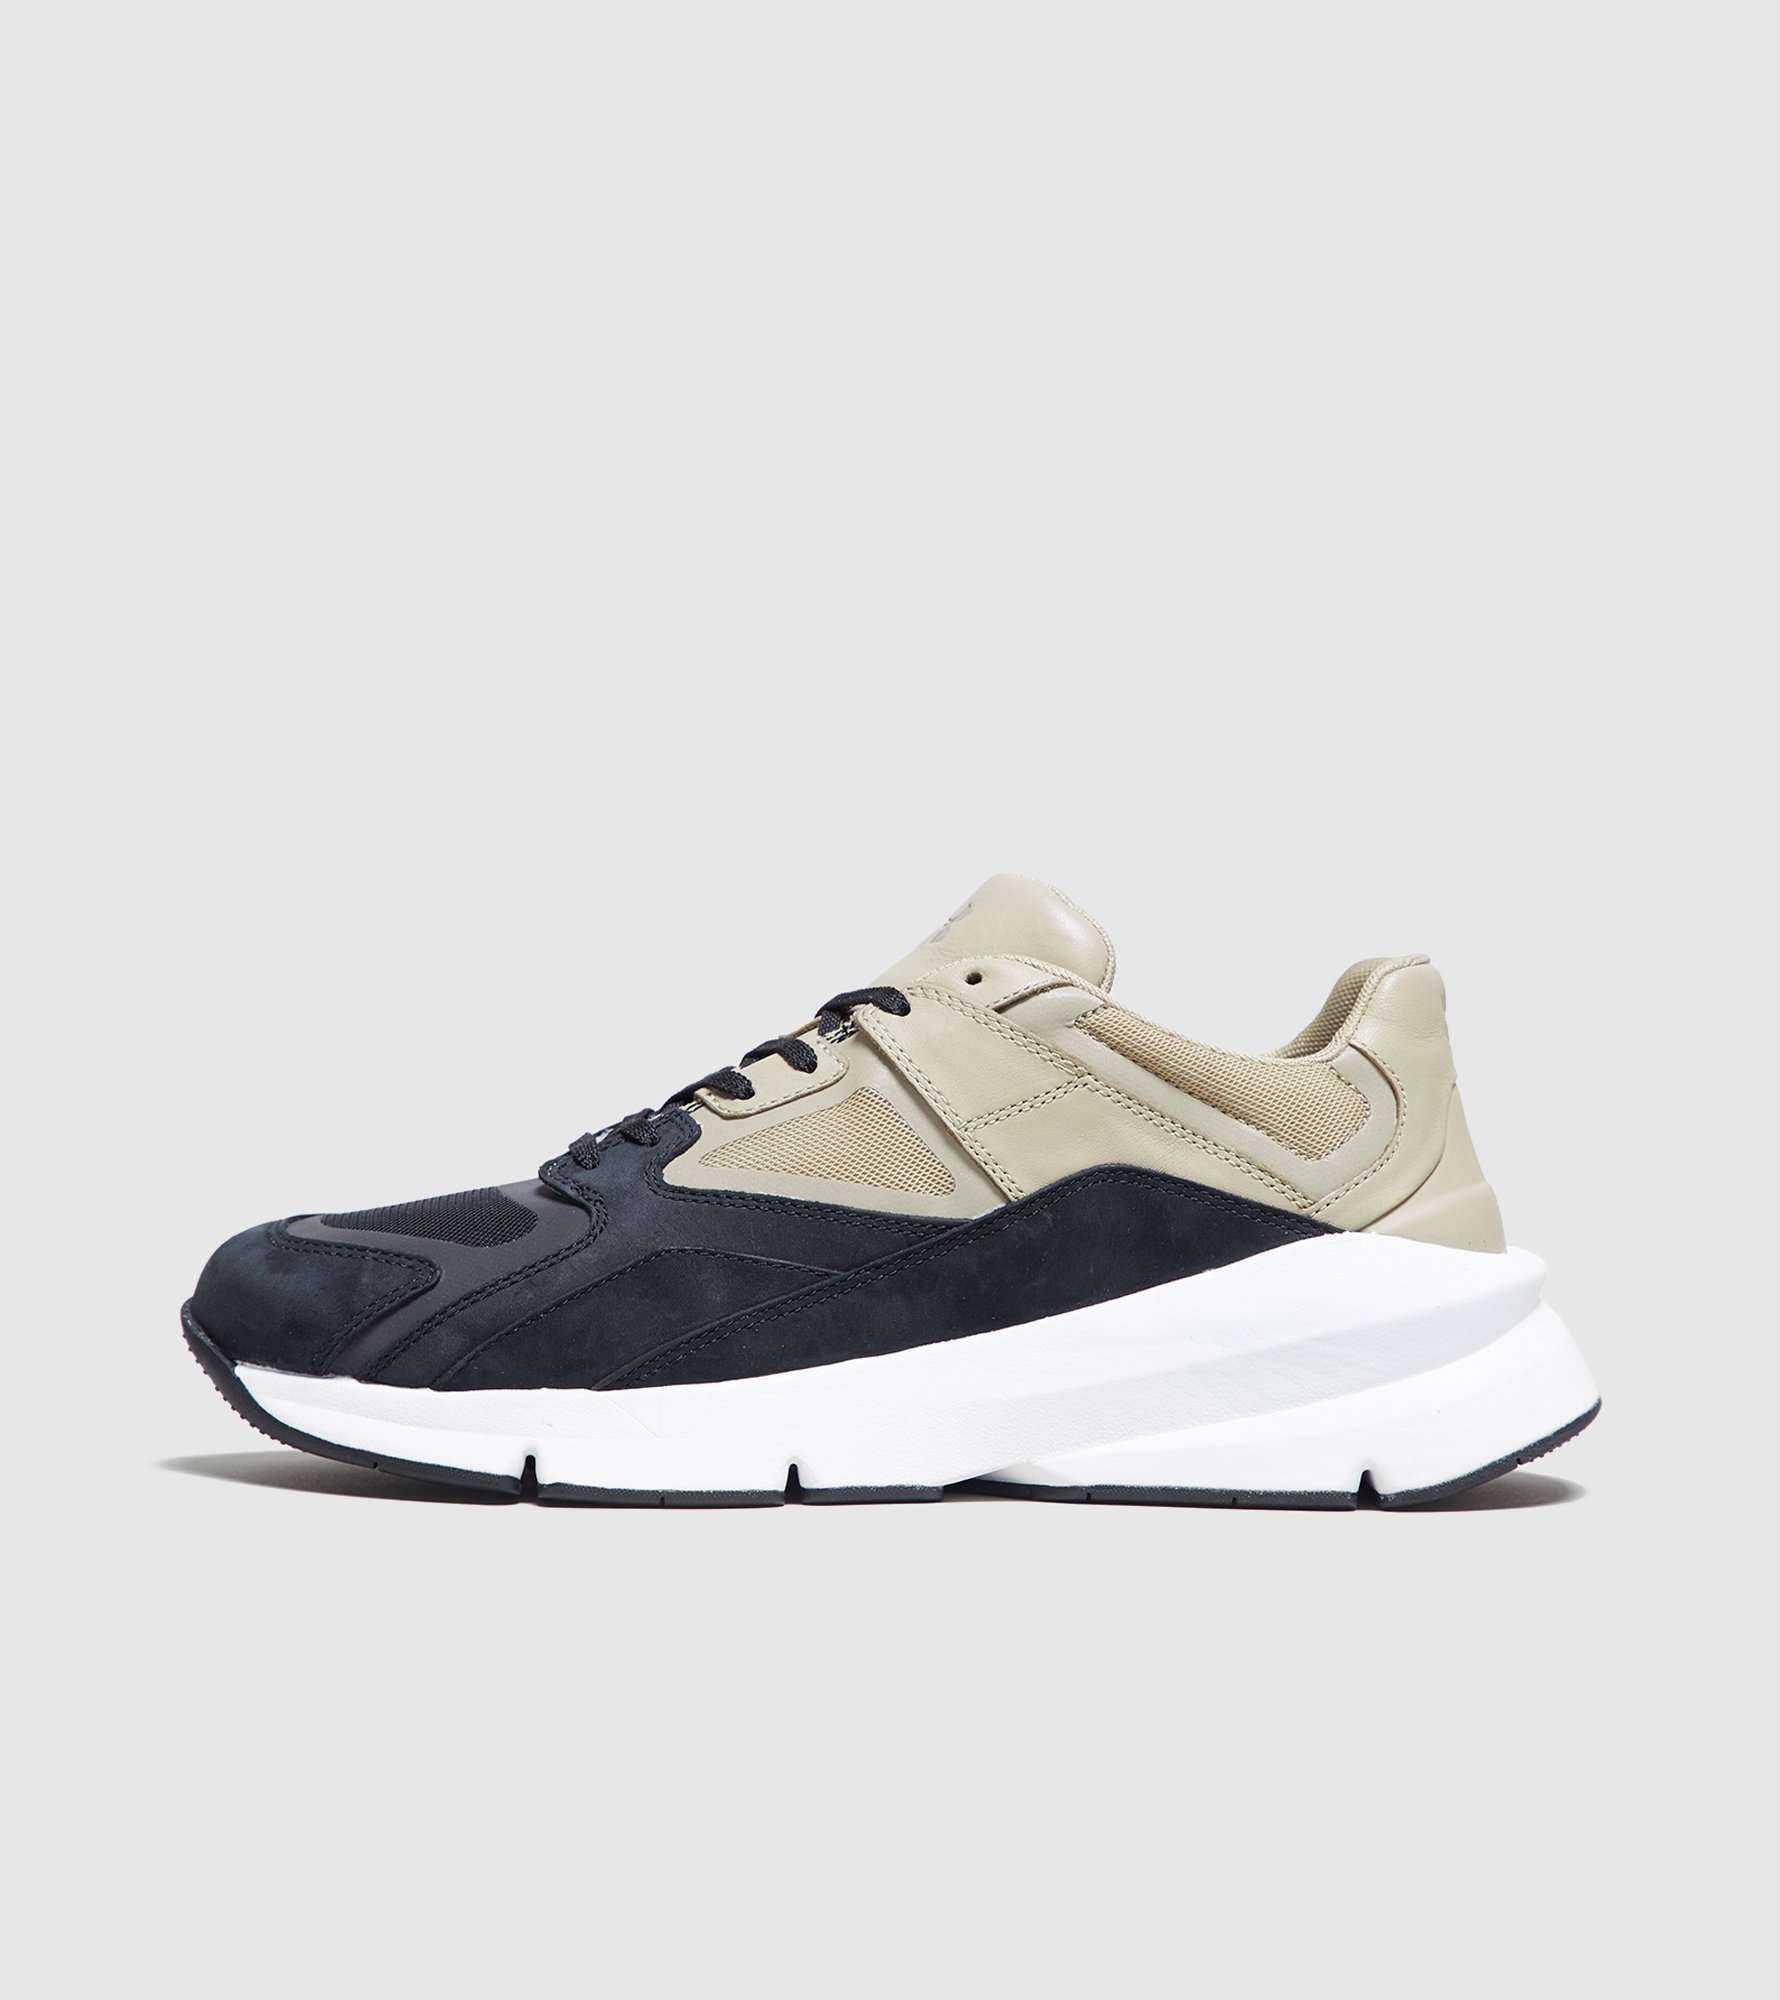 Under Armour Forge 96